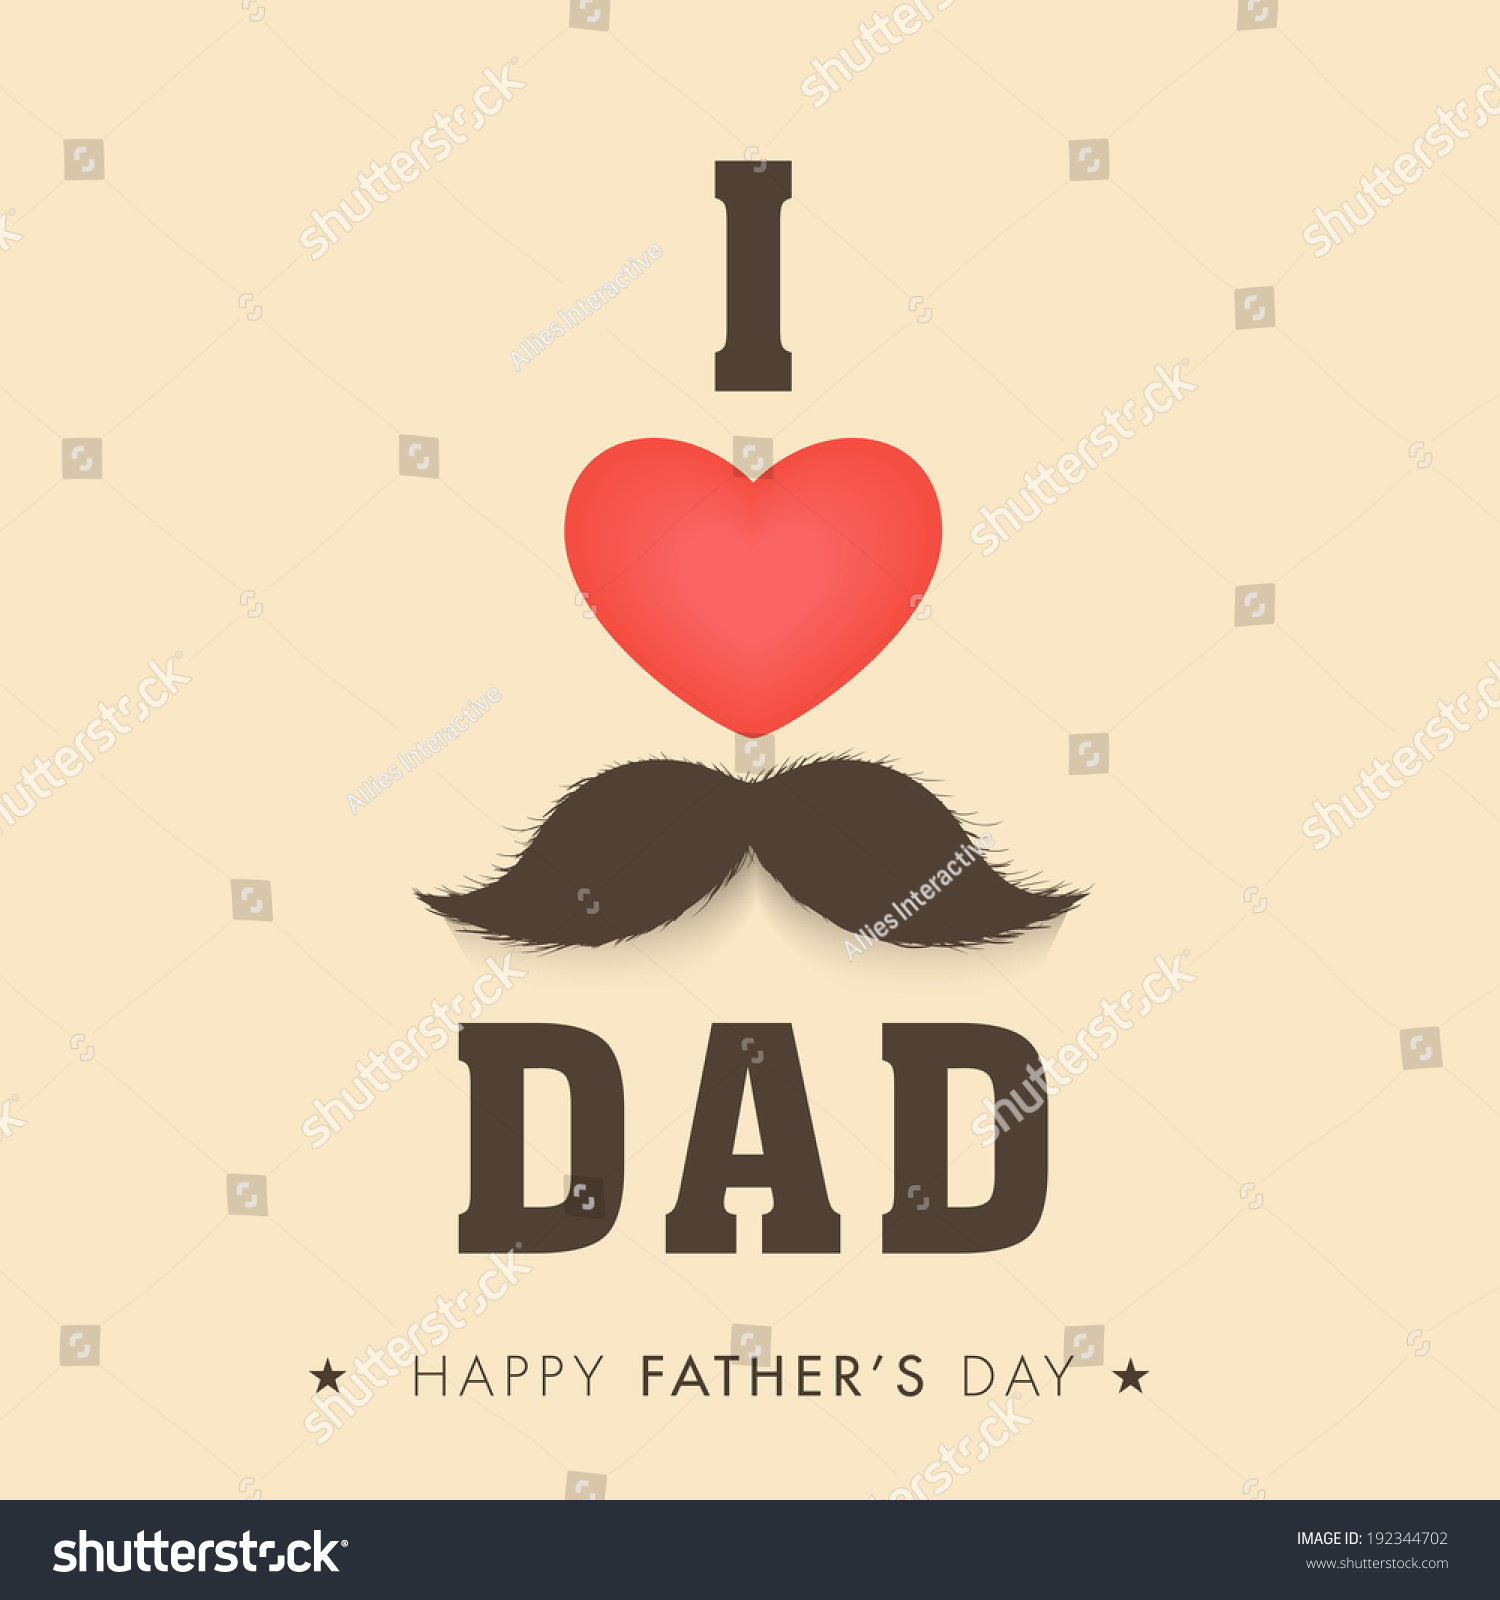 D ad poster design - Poster Banner Or Flyer Design With Stylish Text I Love Dad And Red Heart Shape